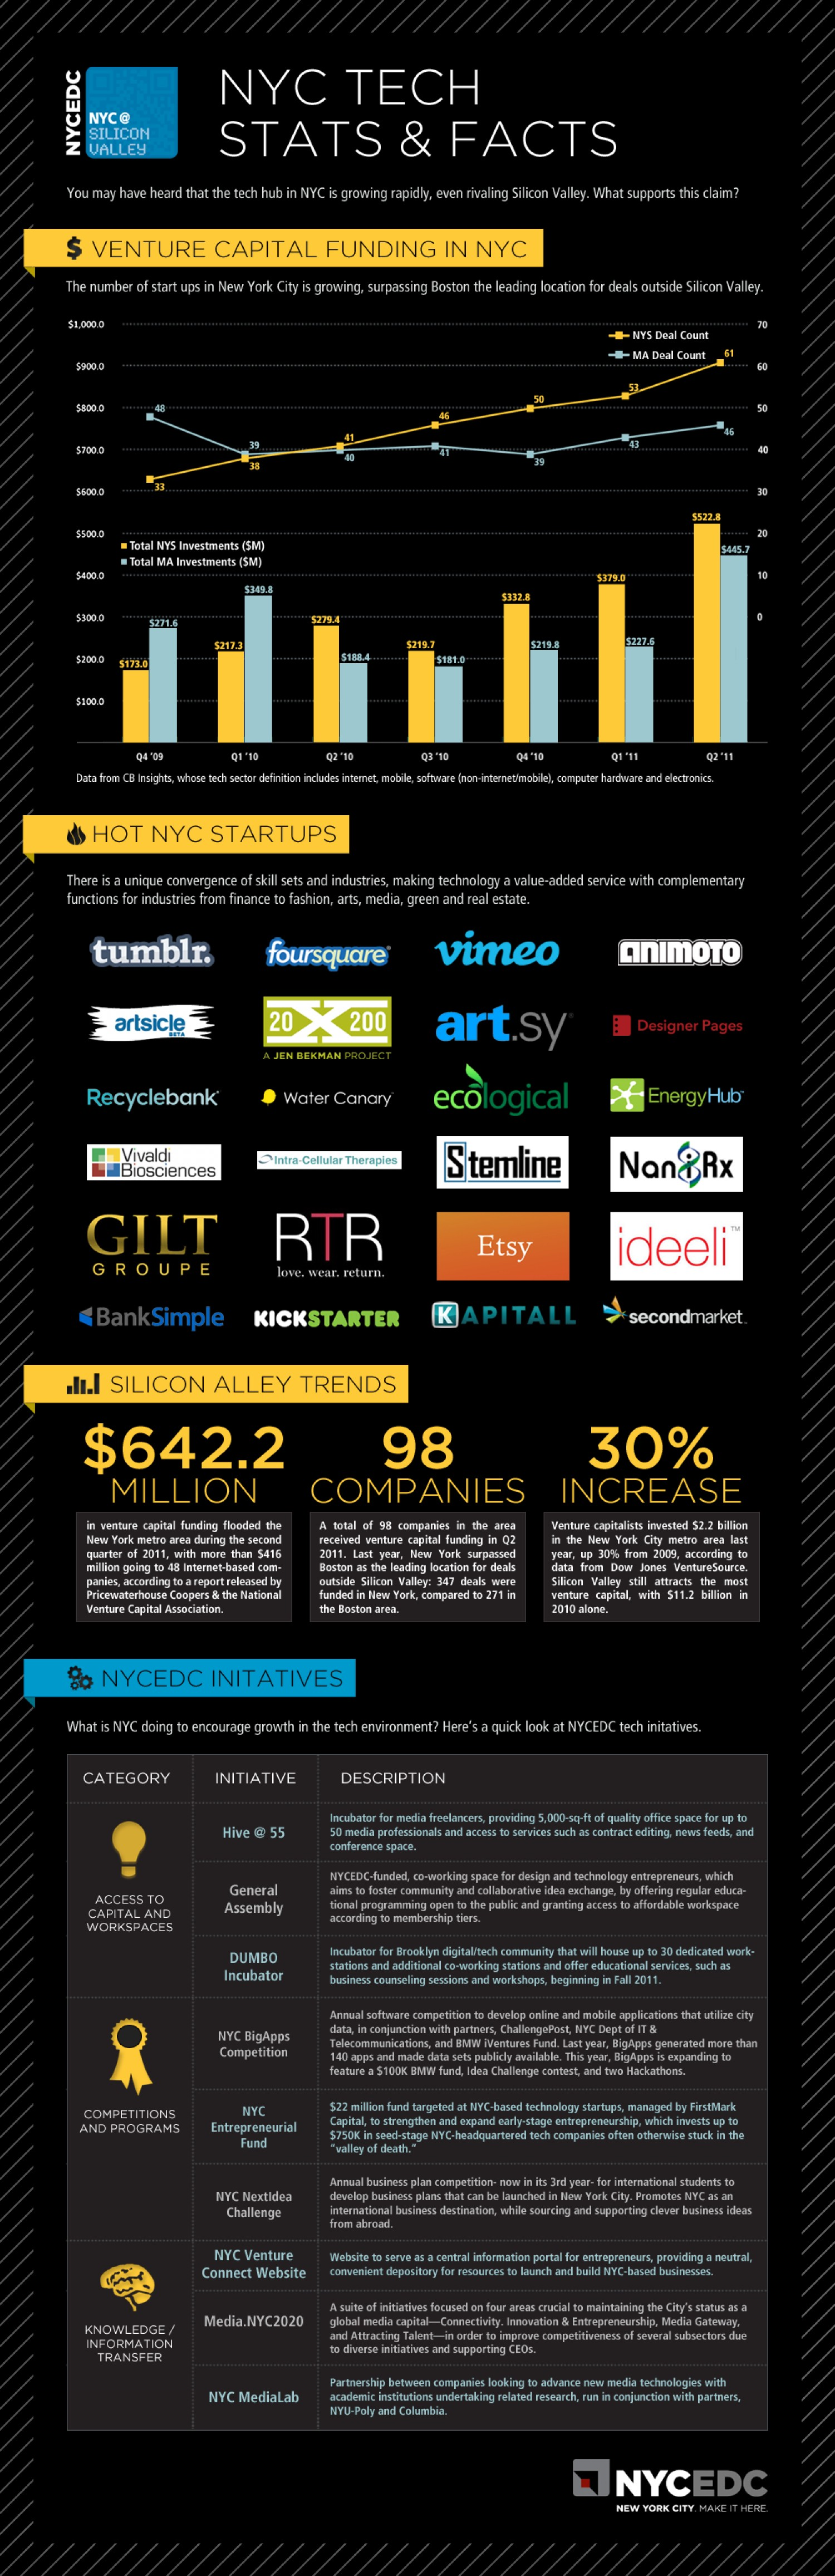 10. NYC Tech Stats & Facts